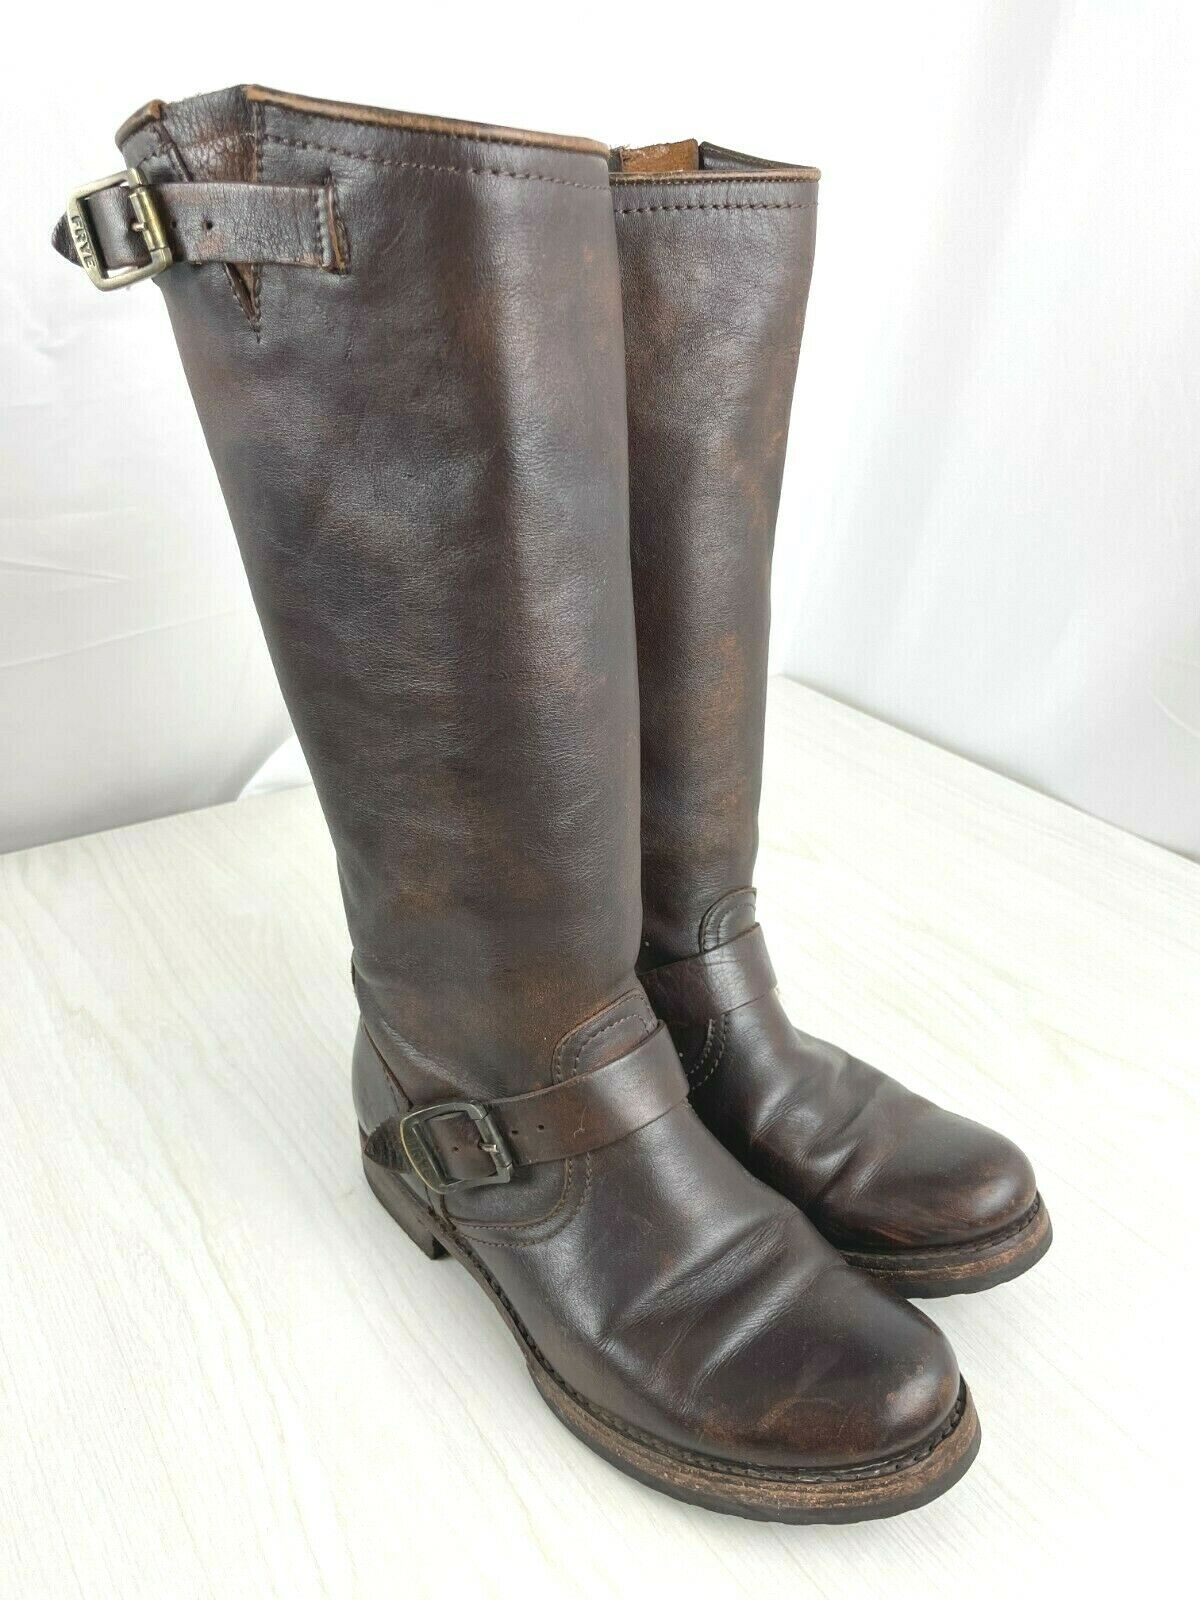 FRYE Women's Veronica Slouch Riding Boots Brown Leather Round Toe Size 7B